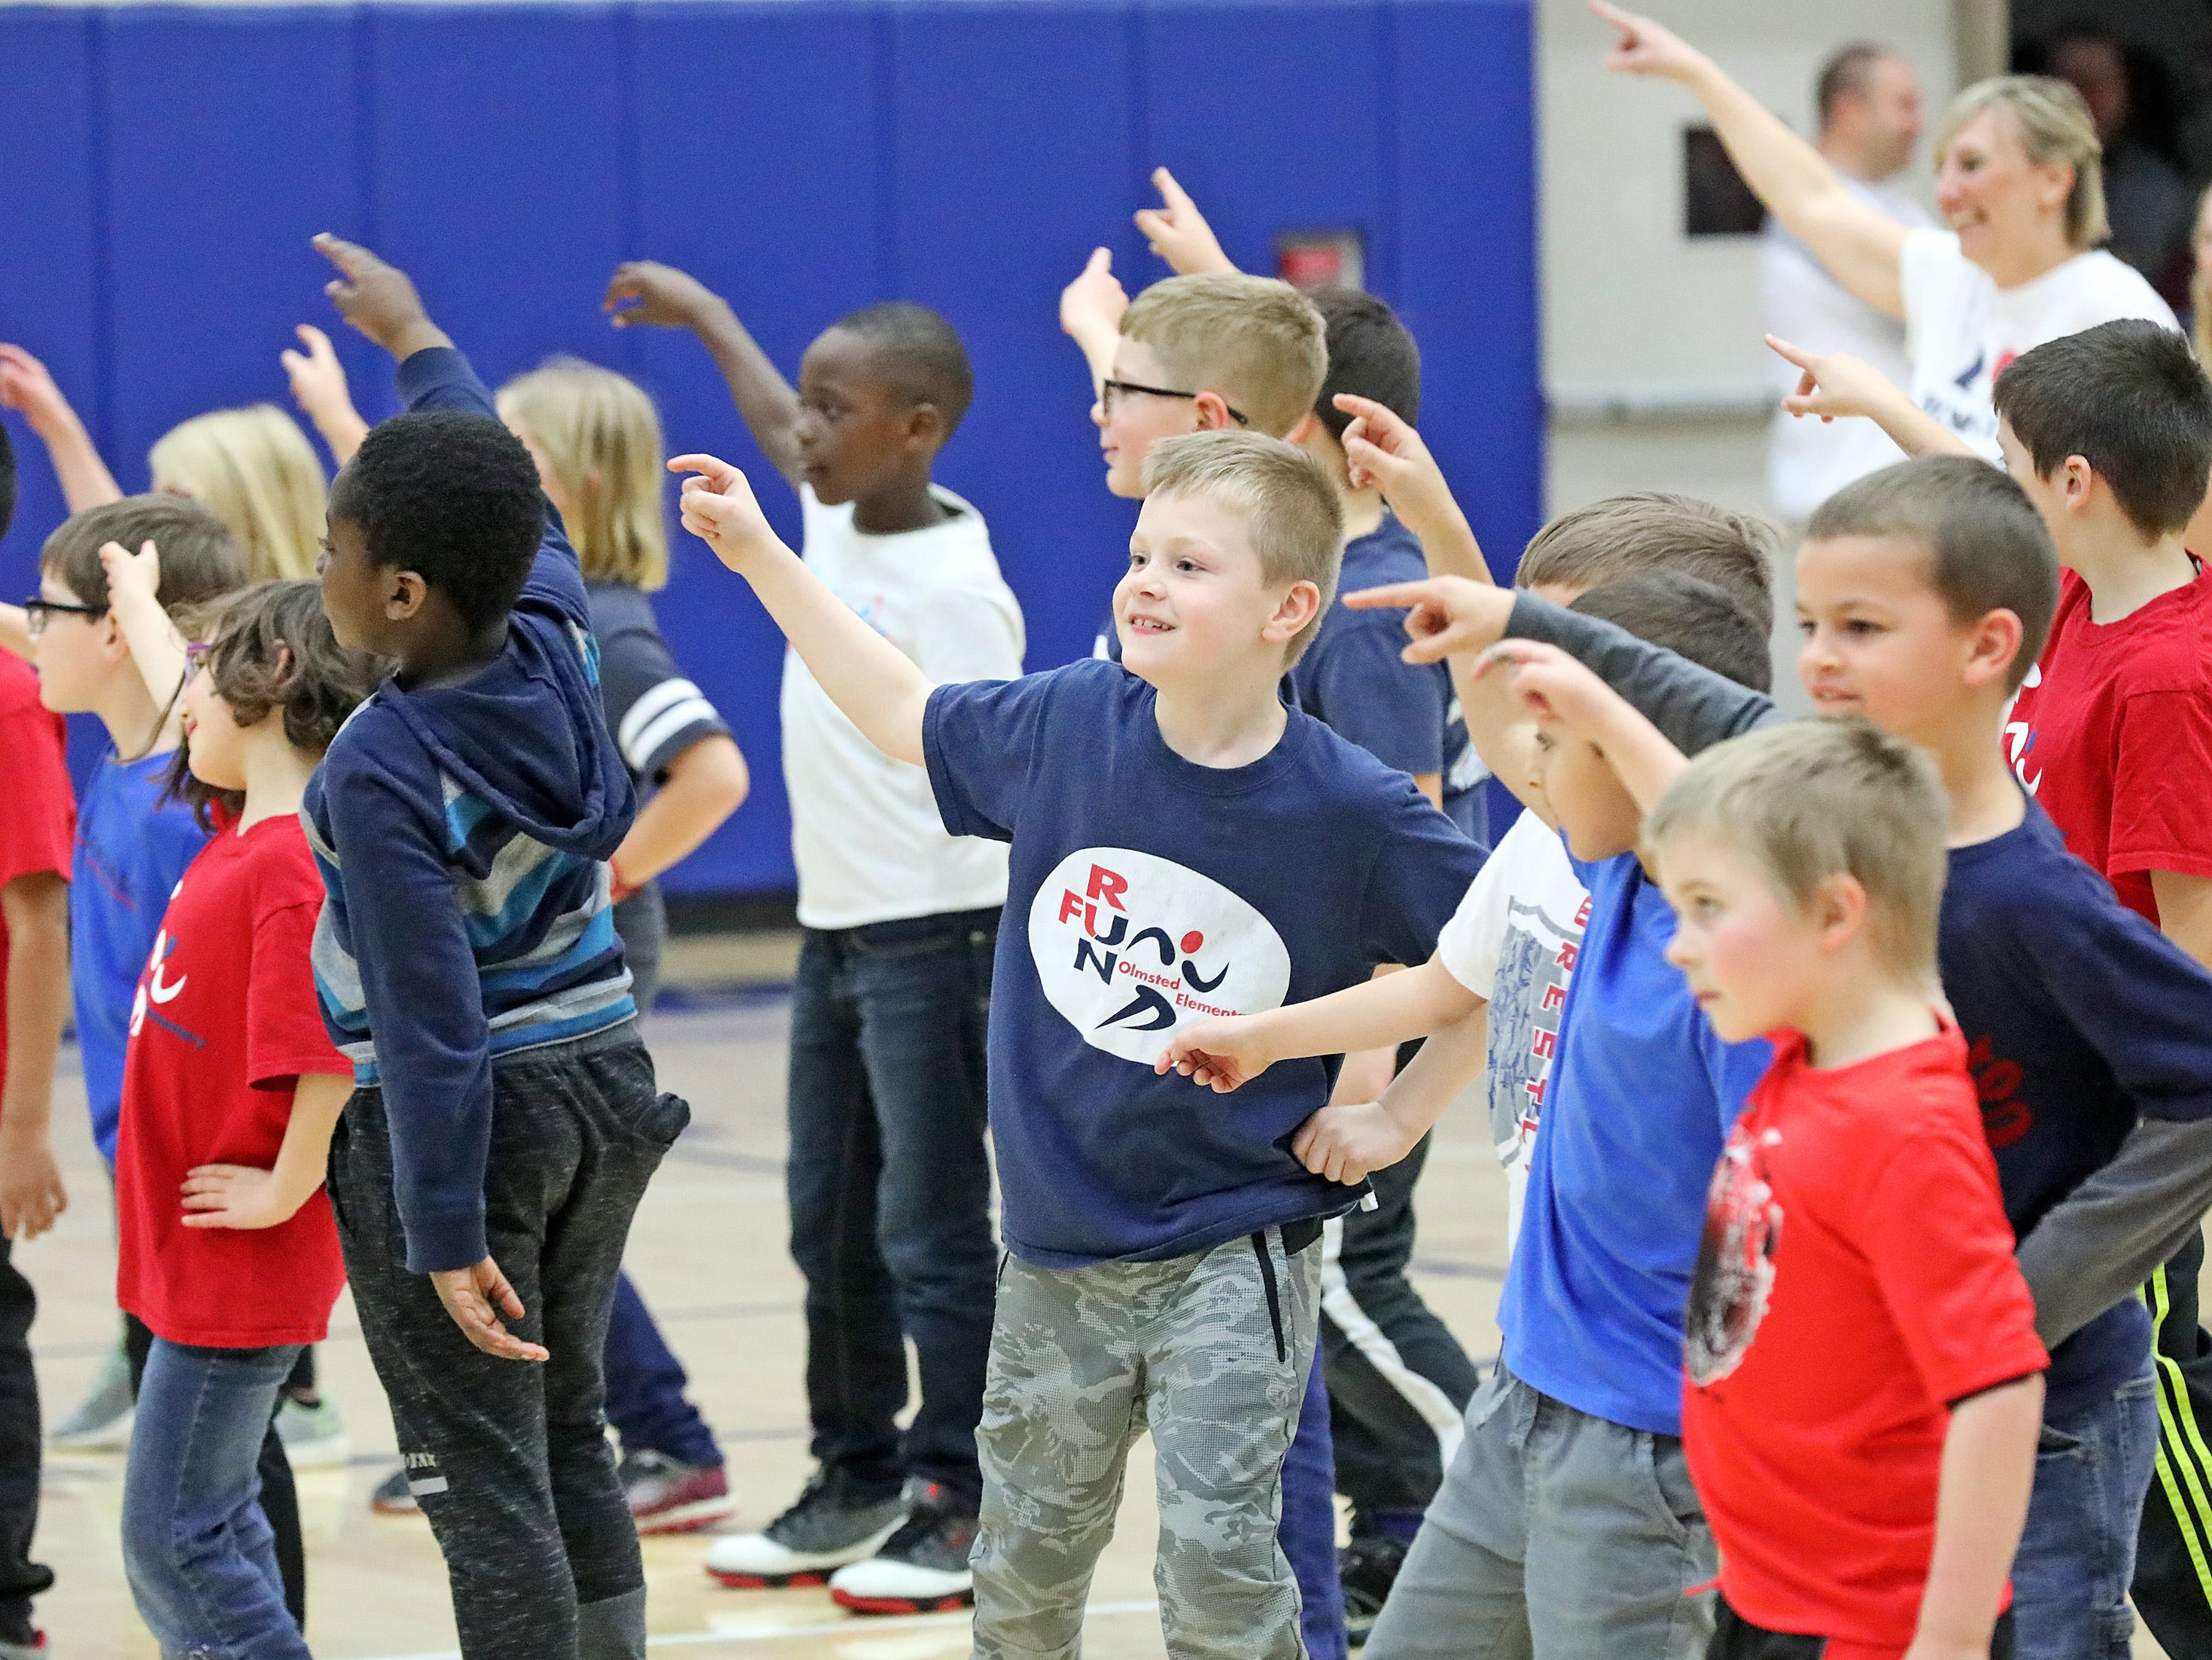 Students from Olmsted Elementary in Urbandale dance during the half-time show as the Ankeny Hawks compete against the Urbandale J-Hawks in high school basketball on Friday, Dec. 14, 2018 at Urbandale High School. Ankeny won 62 to 52 to remain undefeated at 6-0.